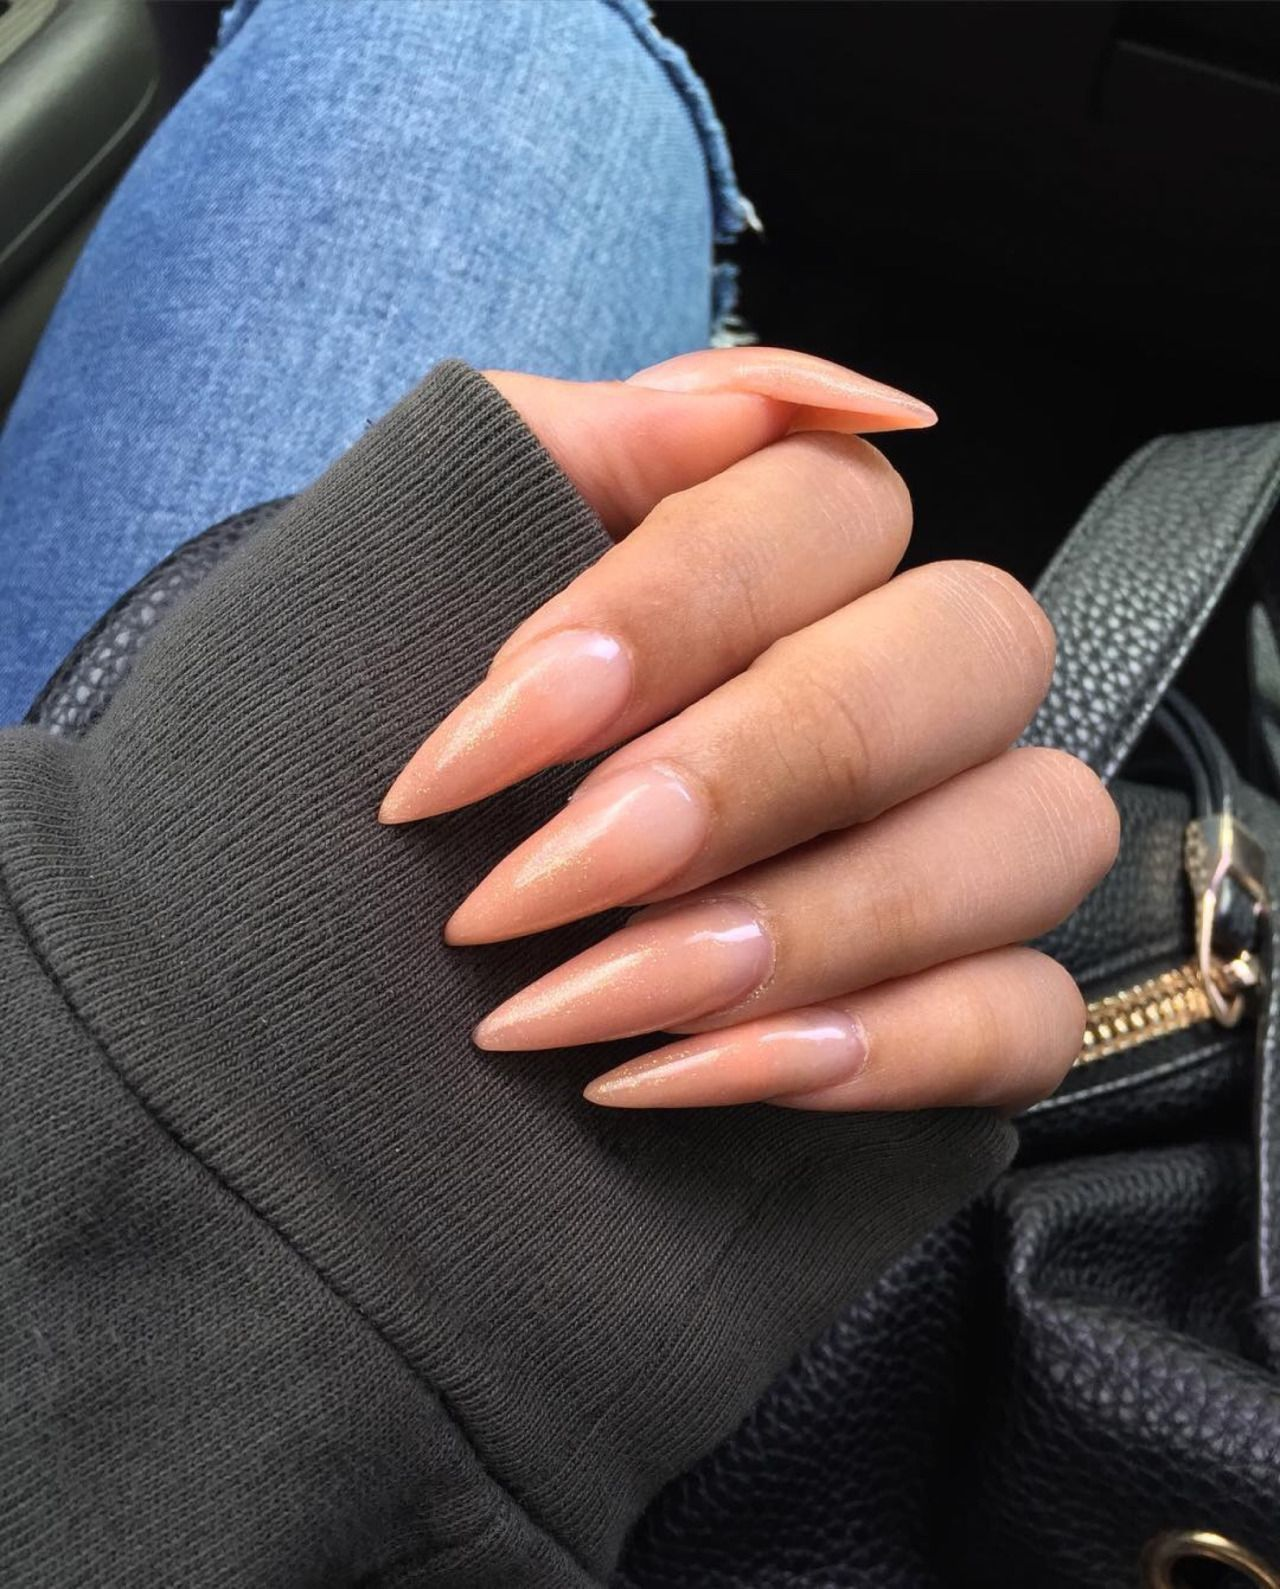 had to show bitches where the top is | Nails | Pinterest ...